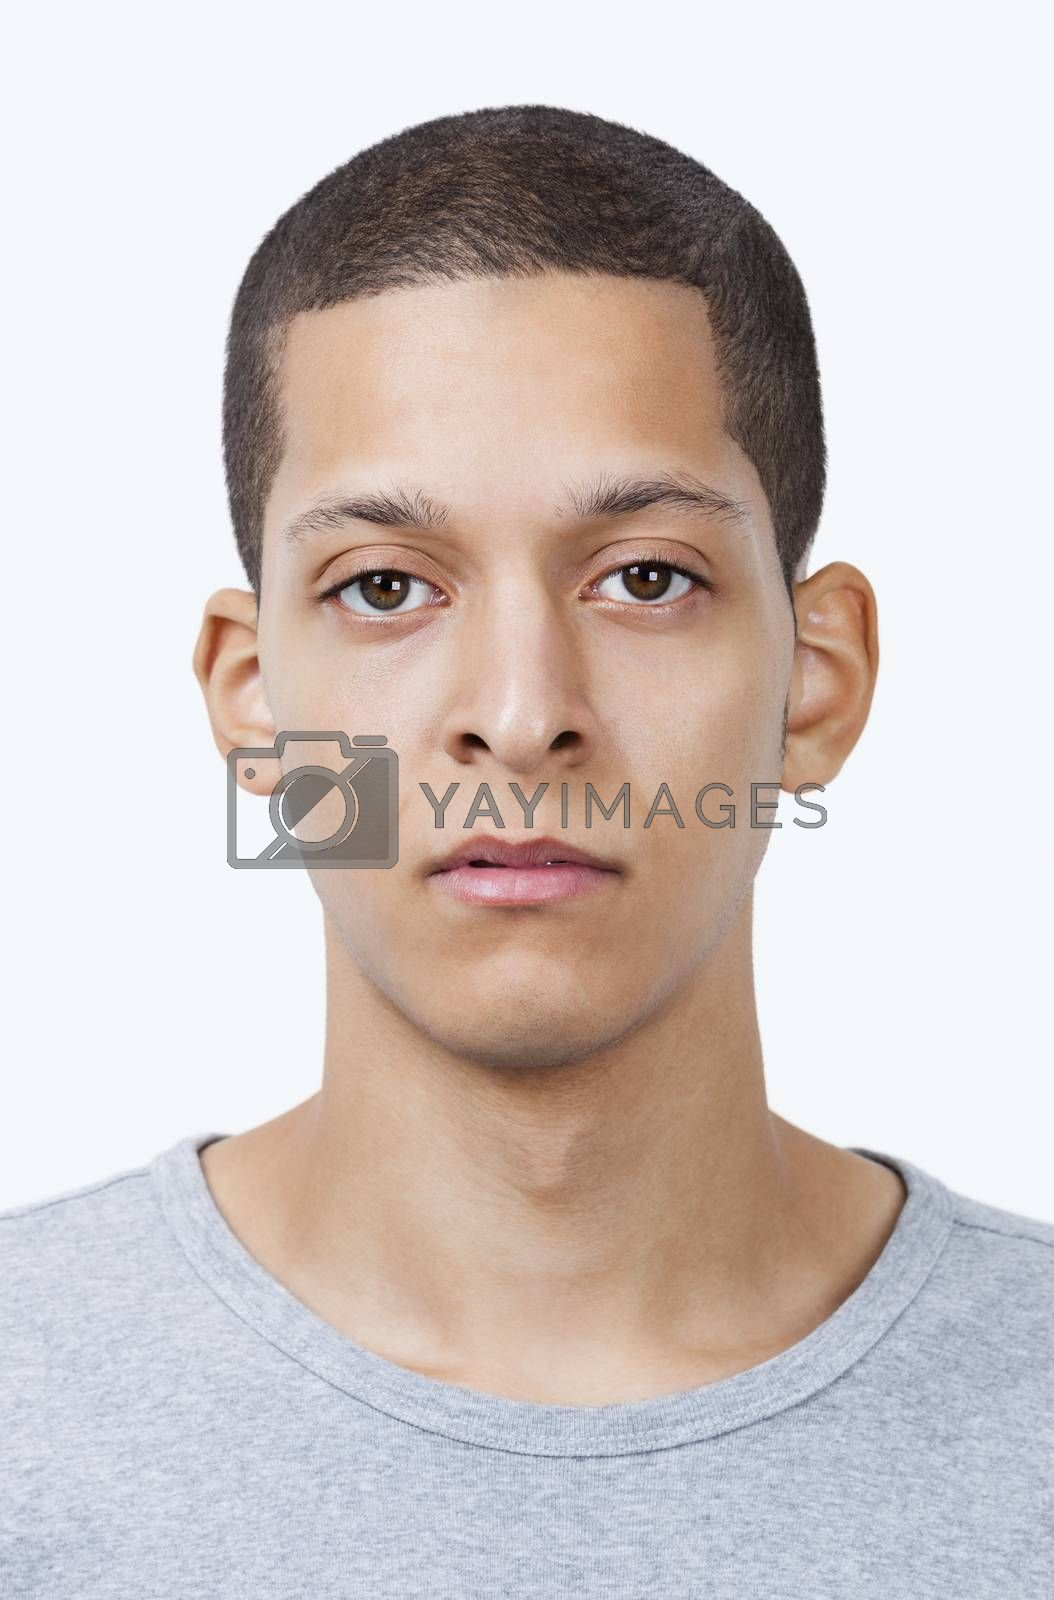 Portrait of young mixed race man against white background